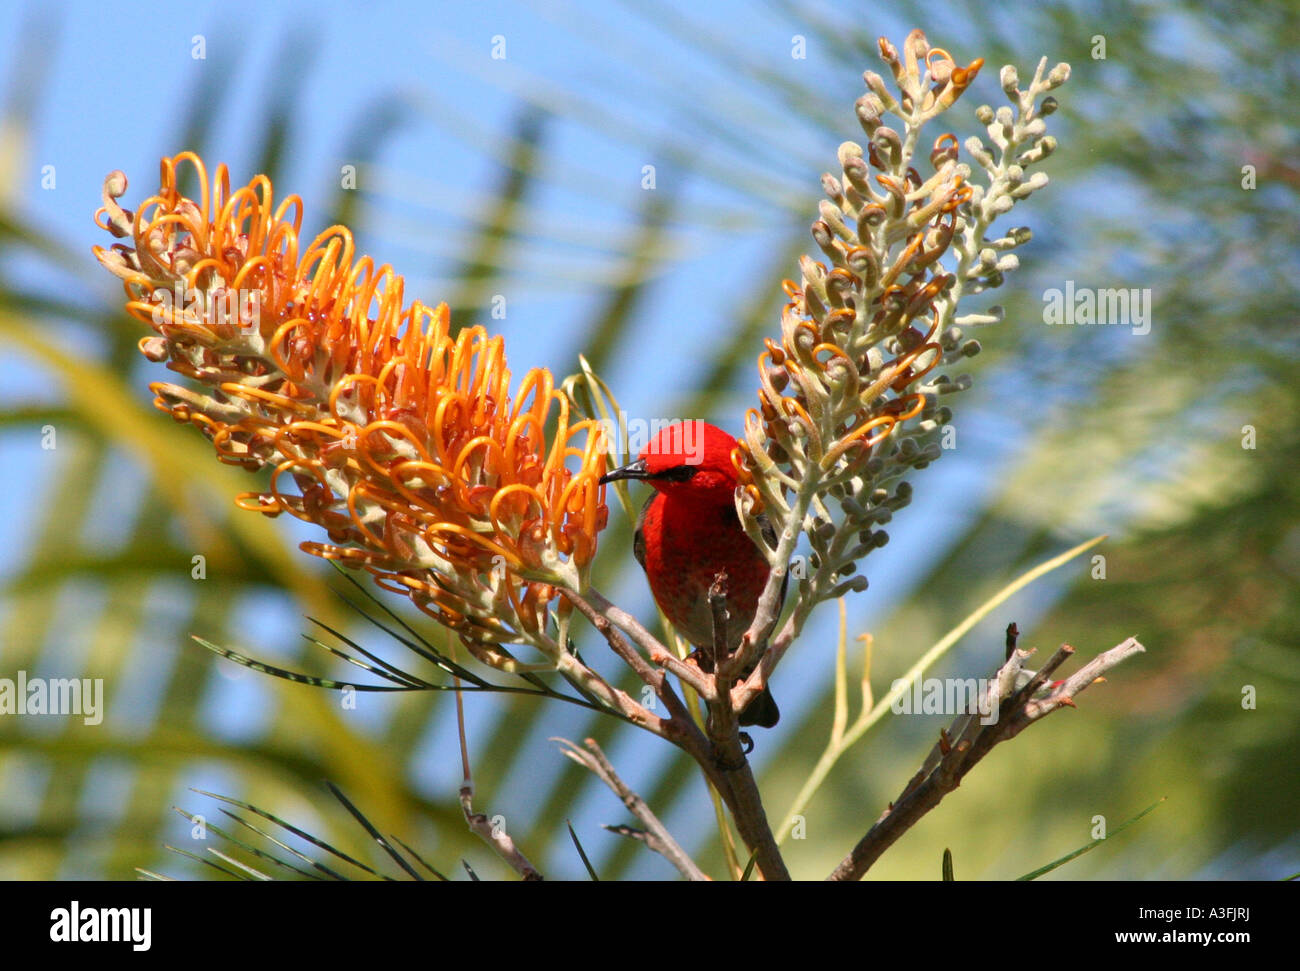 A SCARLET HONEYEATER FEEDING ON GREVILLEA TREES BAPDA9137 - Stock Image